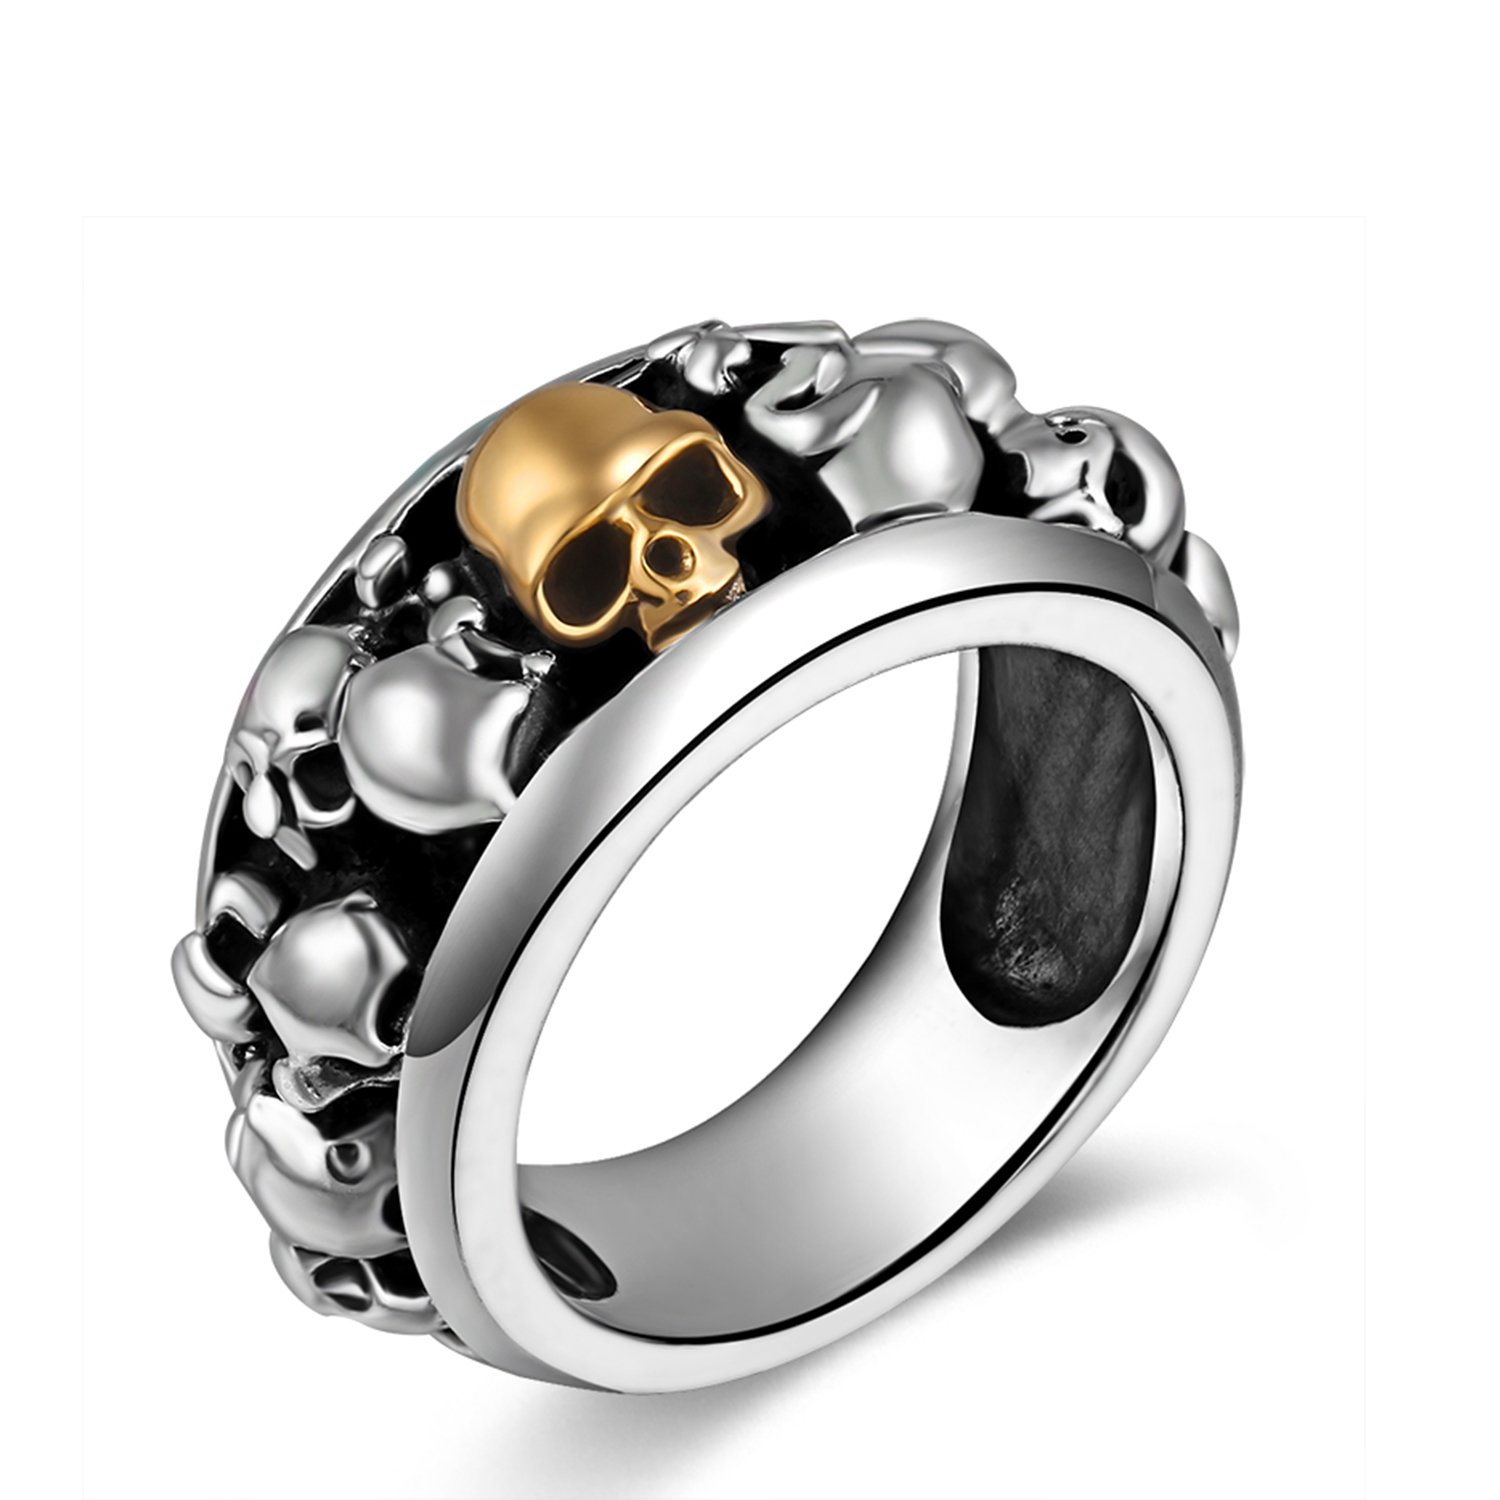 MetJakt Handmade Men's Punk Gold Skull Rings Solid S925 Sterling Silver Ring for Man and Boy Jewelry (10)